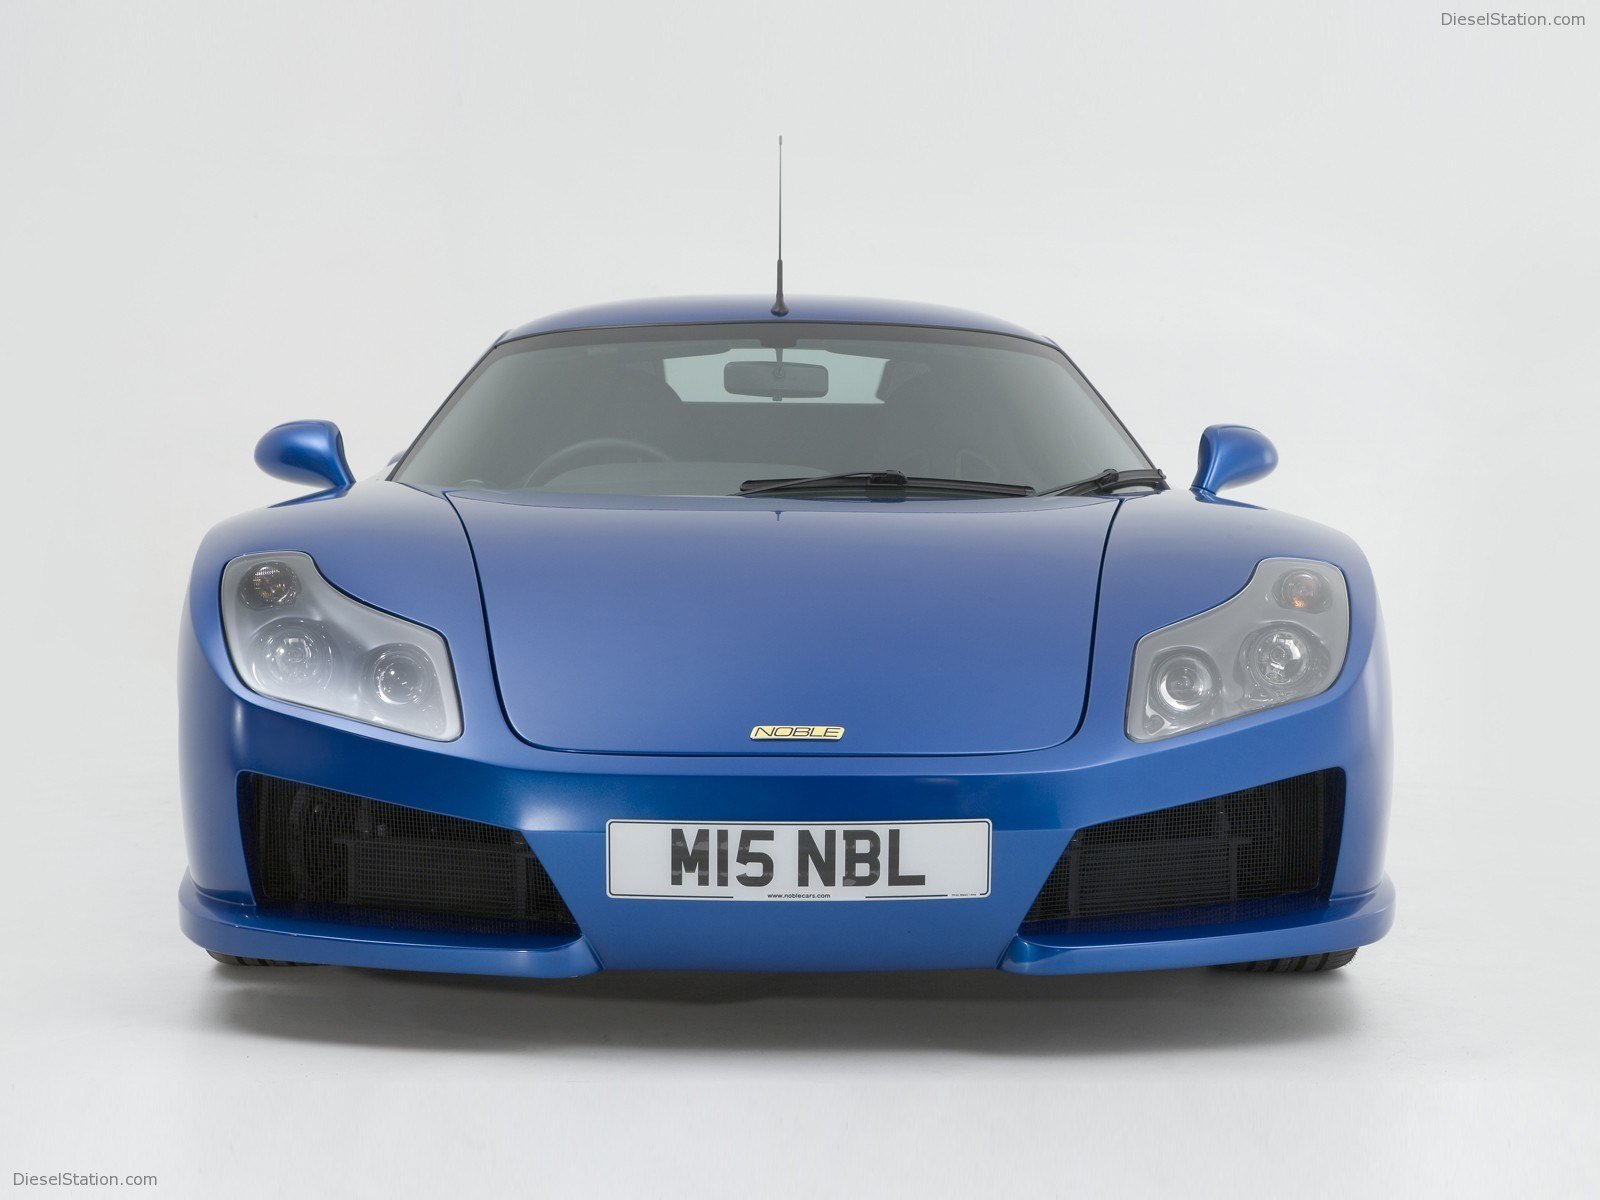 Latest Noble M15 Exotic Car Wallpaper 003 Of 40 Diesel Station Free Download